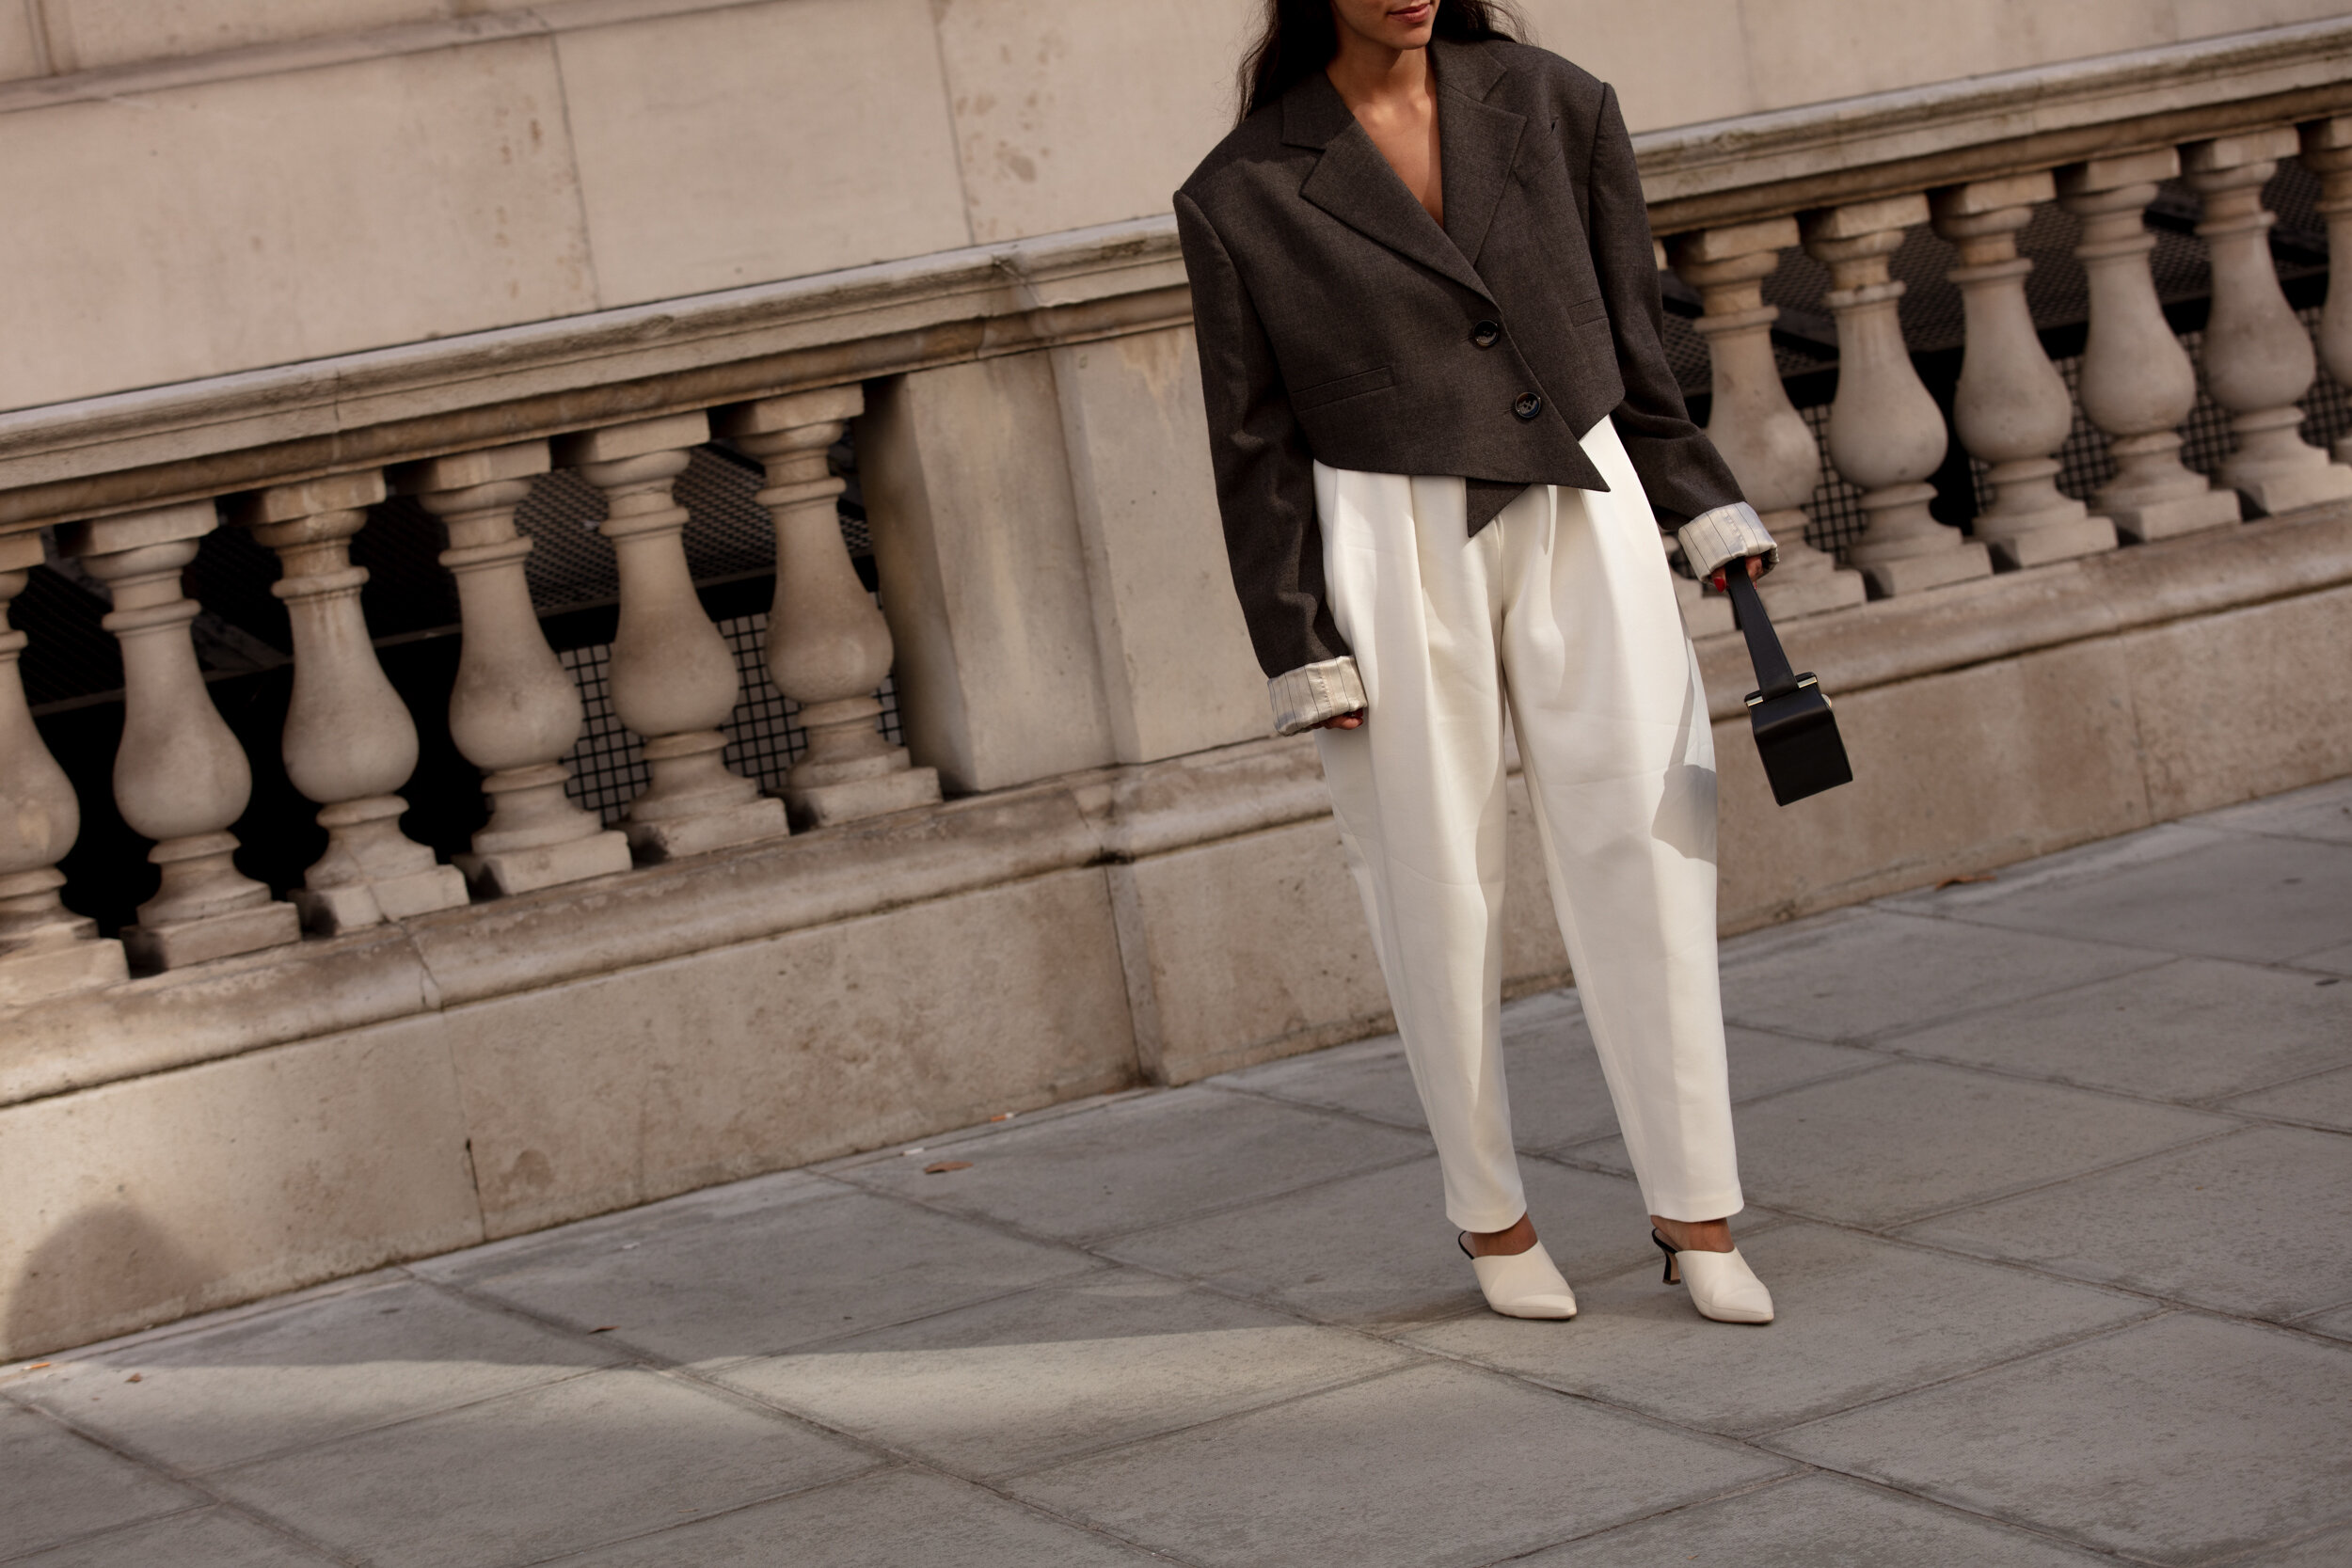 Victoria Beckham / Foreign & Commonwealth Office / LFW SS20